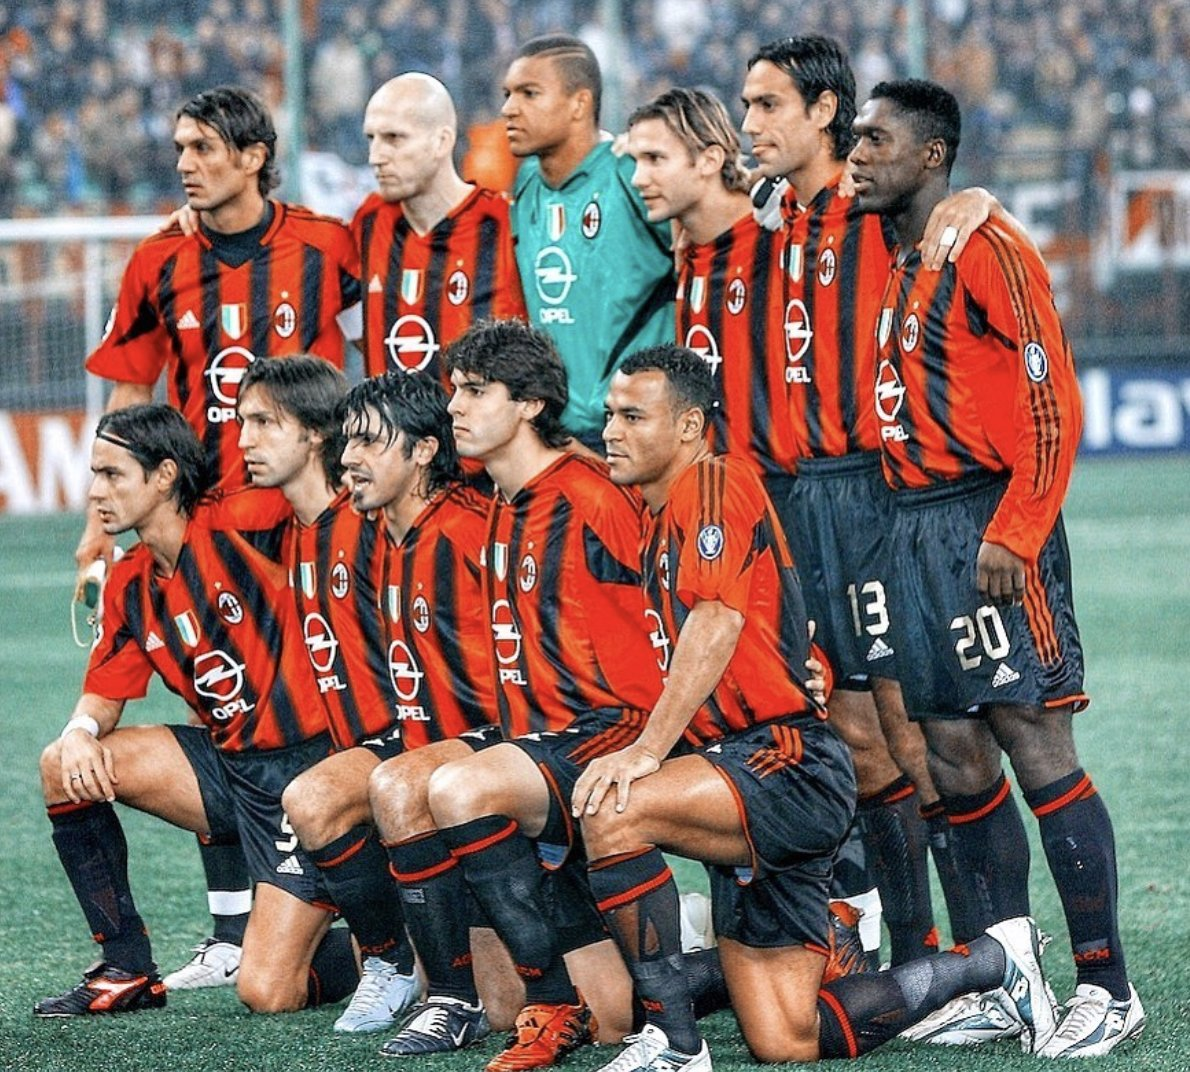 Every single player in this team is a legend in his own right. 🖤❤️